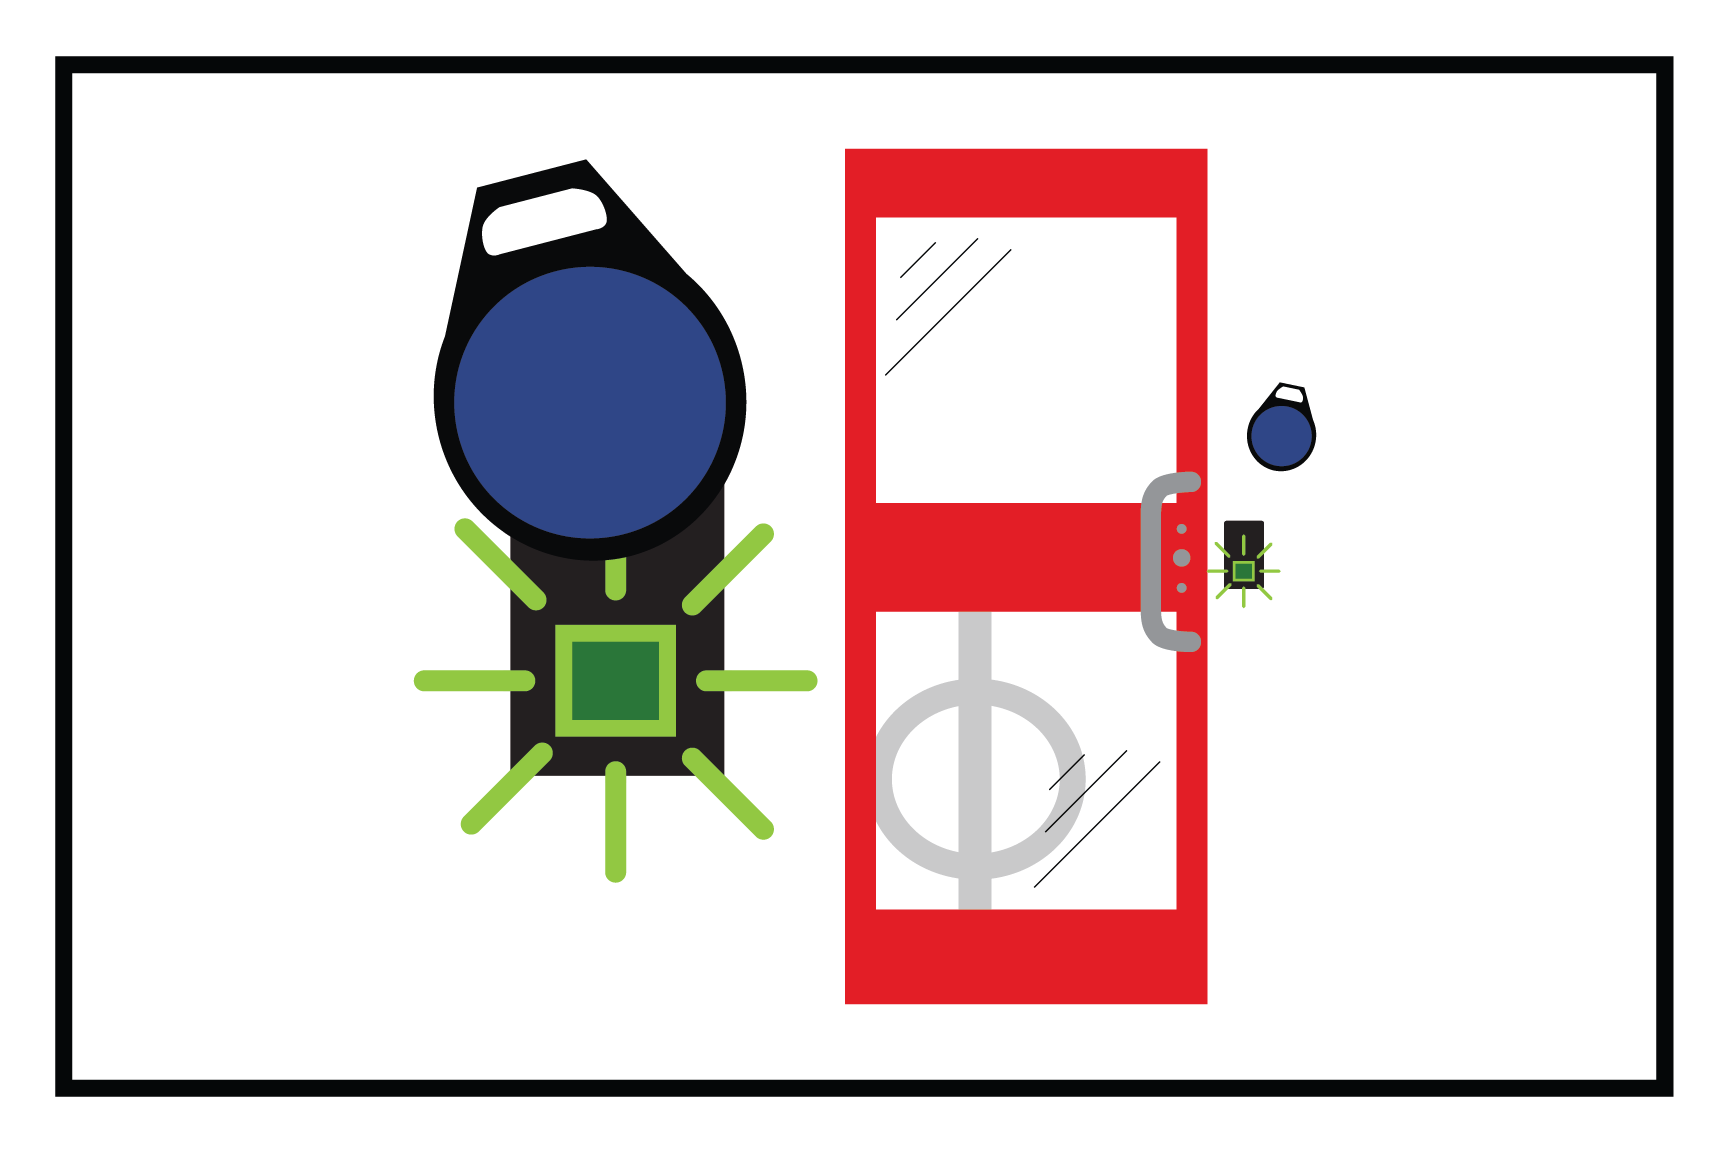 A diagram showing how to unlock a Bikesecure shelter using a key fob.